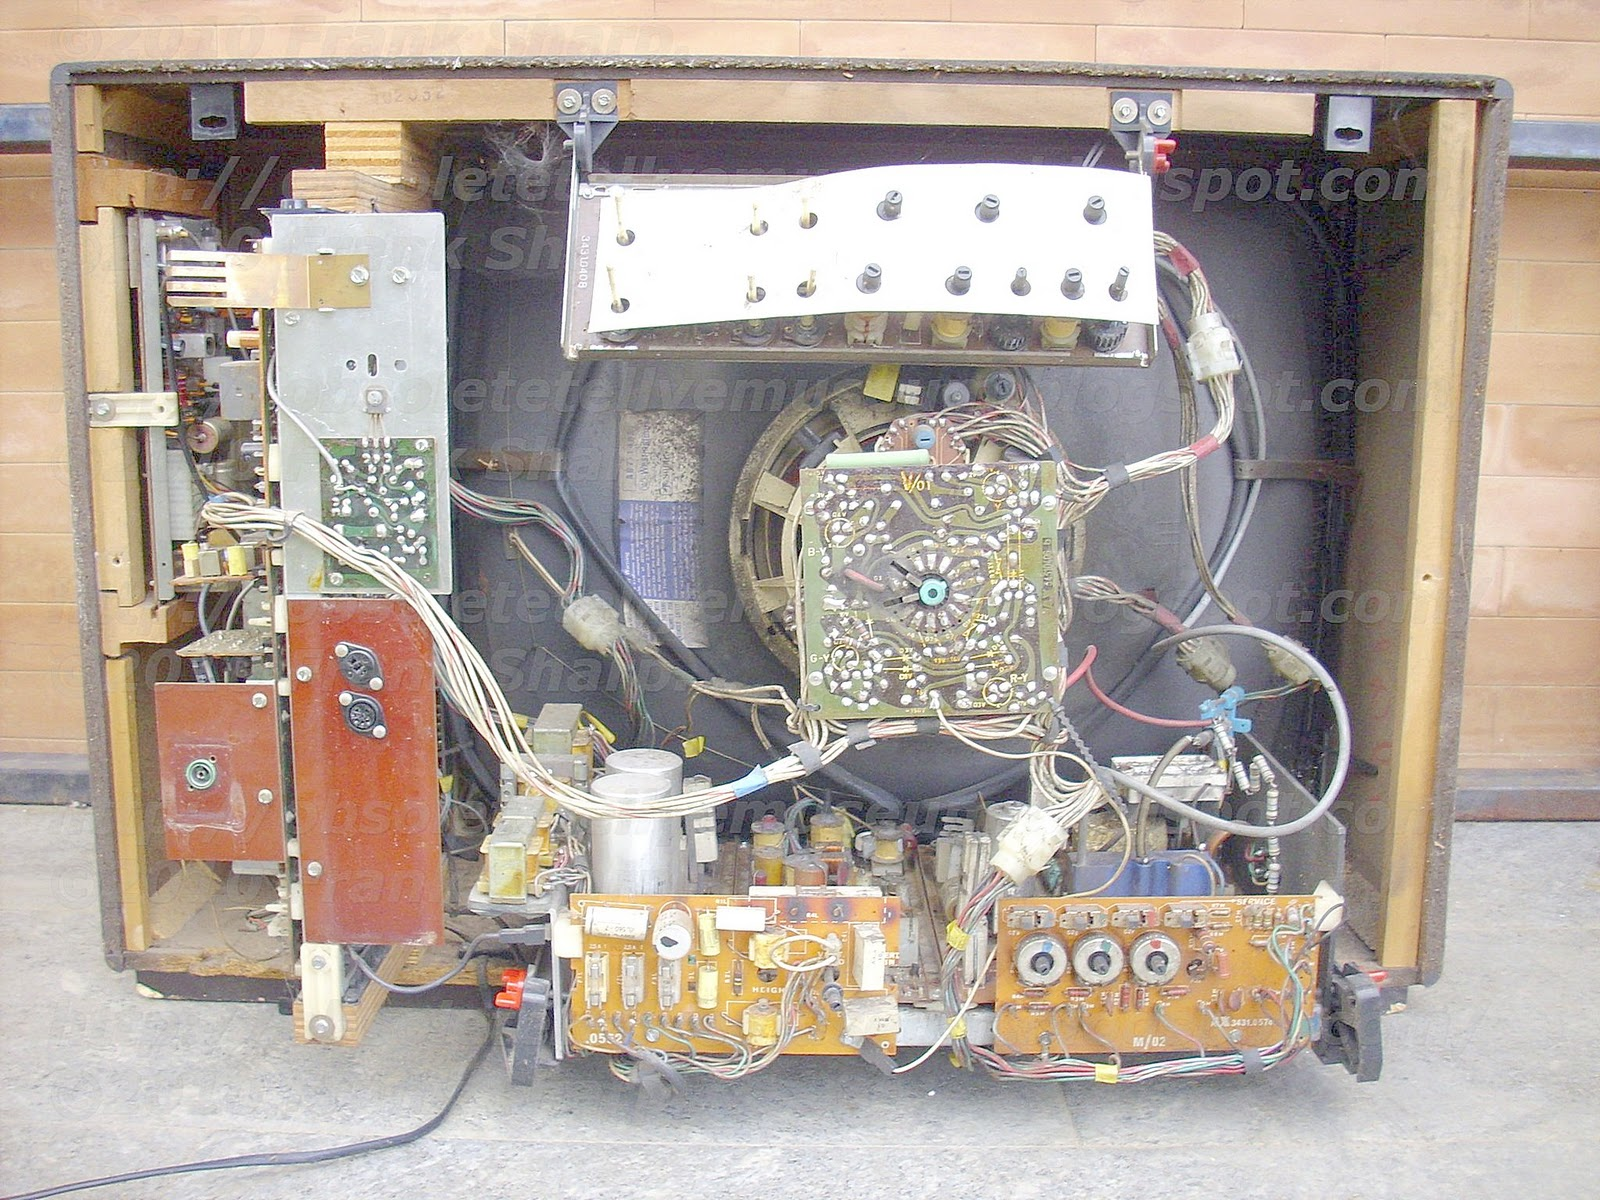 Obsolete Technology Tellye Autovox Mod Tvc2694 E Chassis 50703 Gaincontrolled Amplifier Circuit Diagram Tradeoficcom The Output 15 Of Monoflop 5 Is Connected To Input 16 A Sequence Control Device 17 Which Set In Operation By Signal Emitted